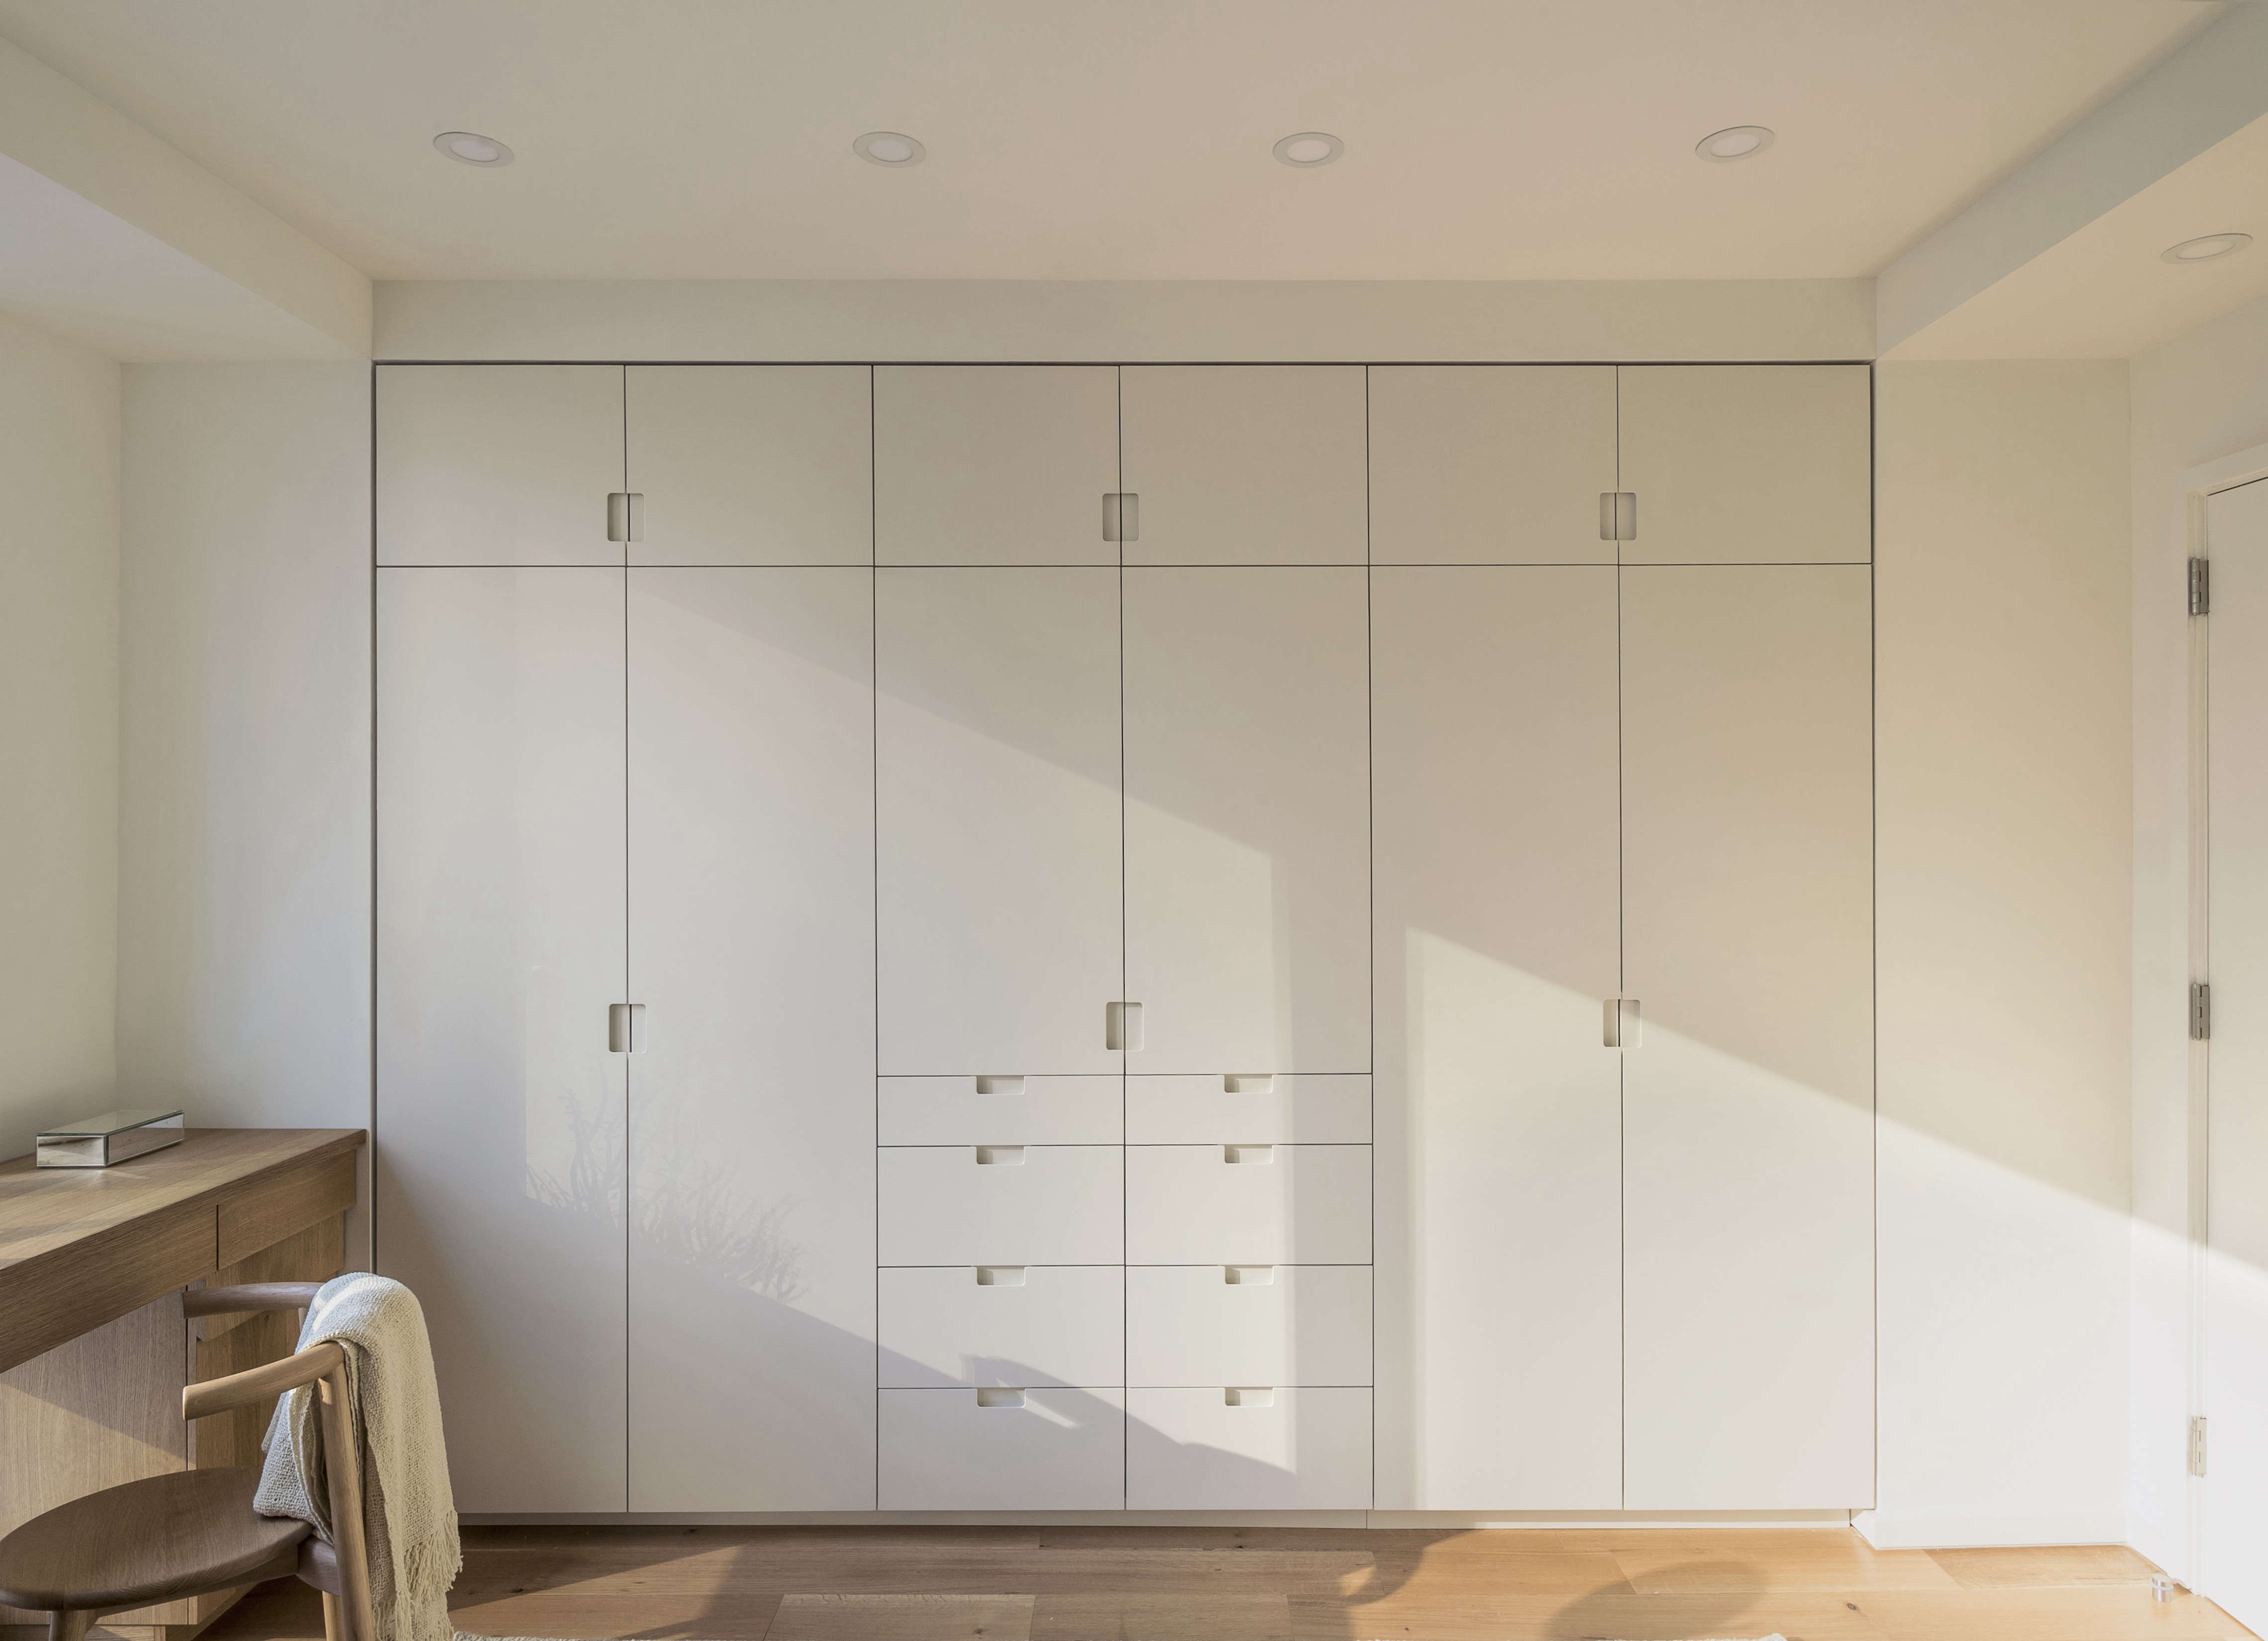 Archive Dive: Our 12 Favorite Built-in Storage Cabinets